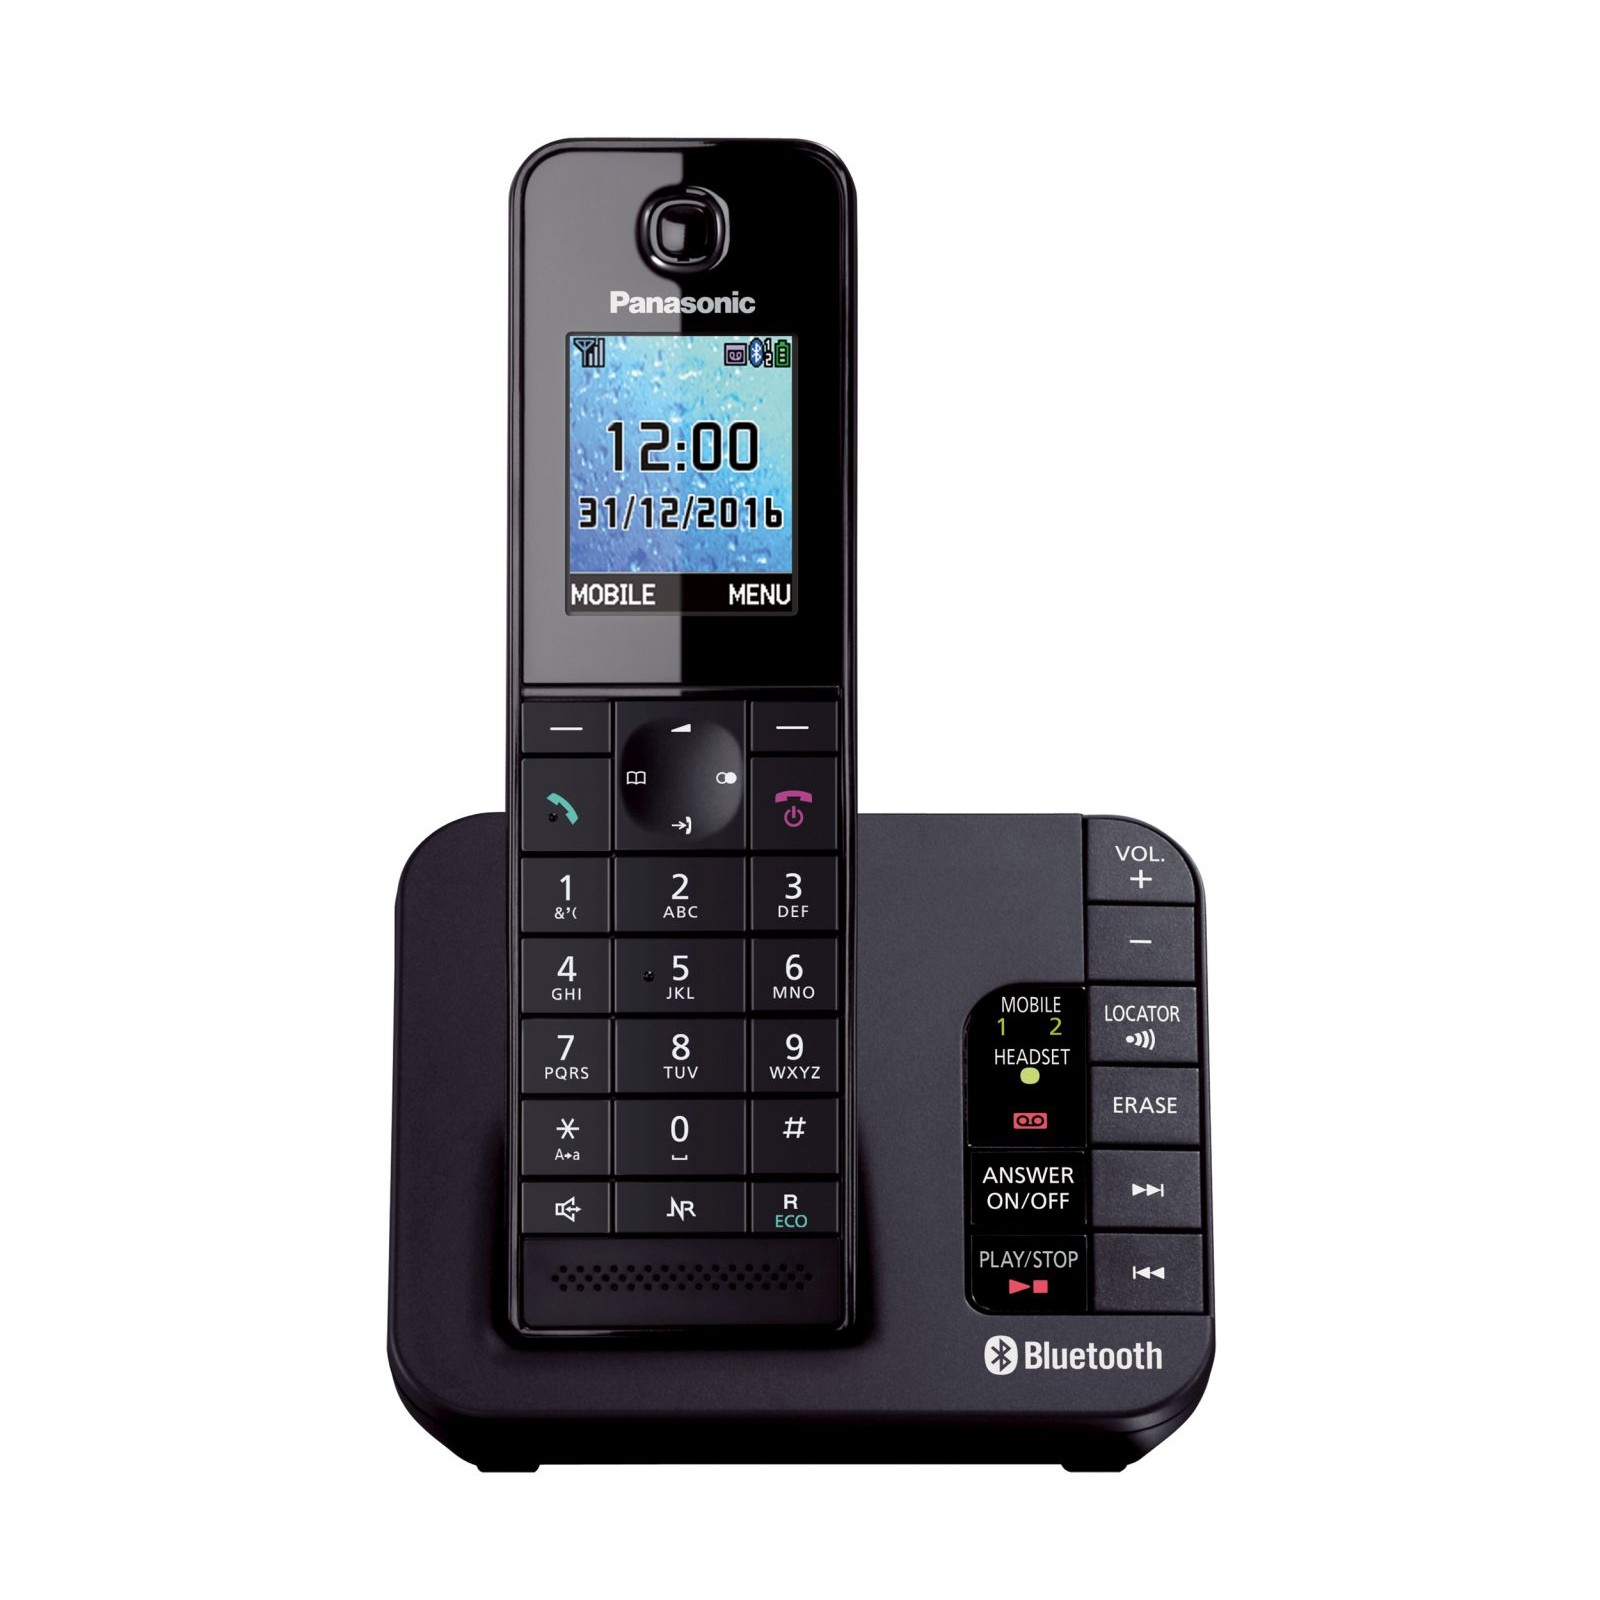 Wireless Phone Panasonic Kx Tgh260 Link2mobile Cordless Phone Ligo